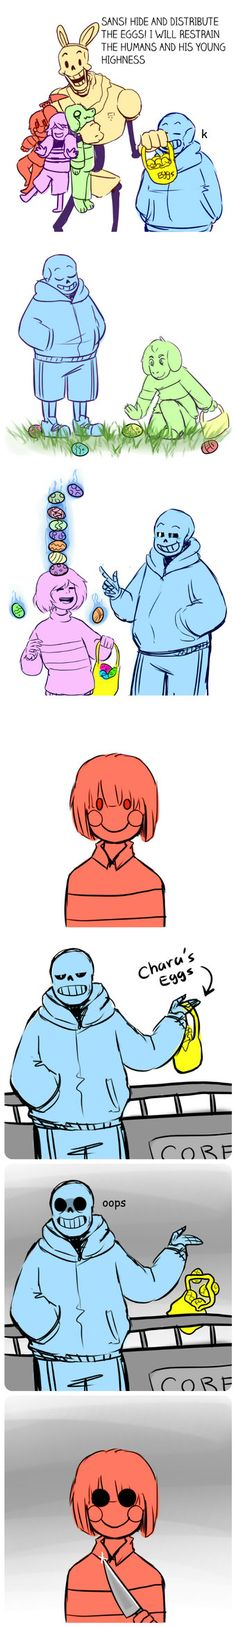 Sans purposely drops the eggs in the core and looks at Chara. Chara: wanna die smiley trash bag